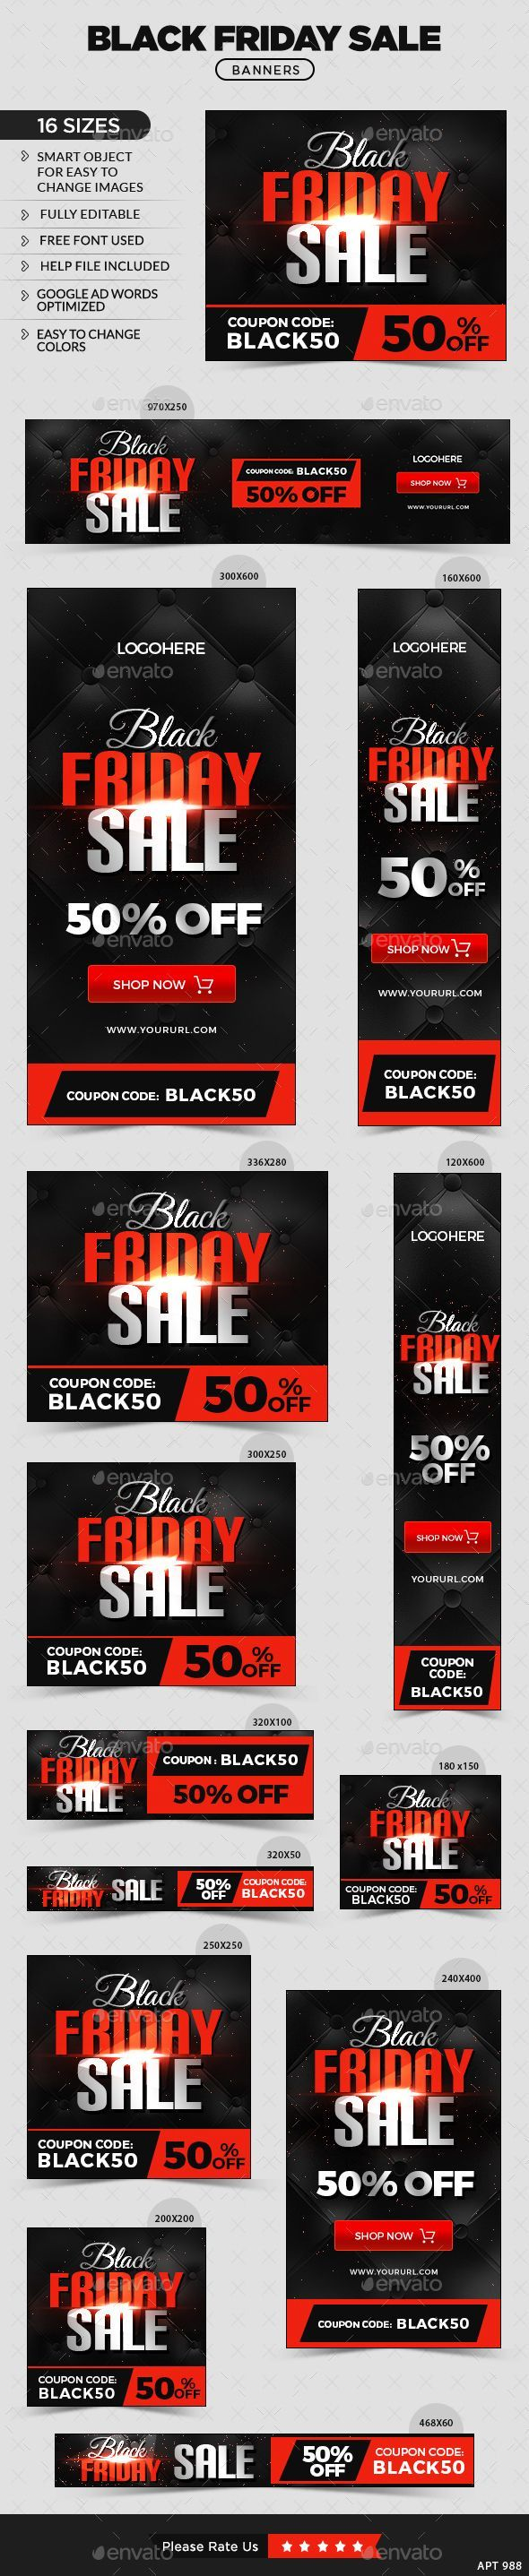 Black Friday Web Banners Template Psd Ads Design Download Graphicriver Net Ads B Black Friday Banner Black Friday Web Black Friday